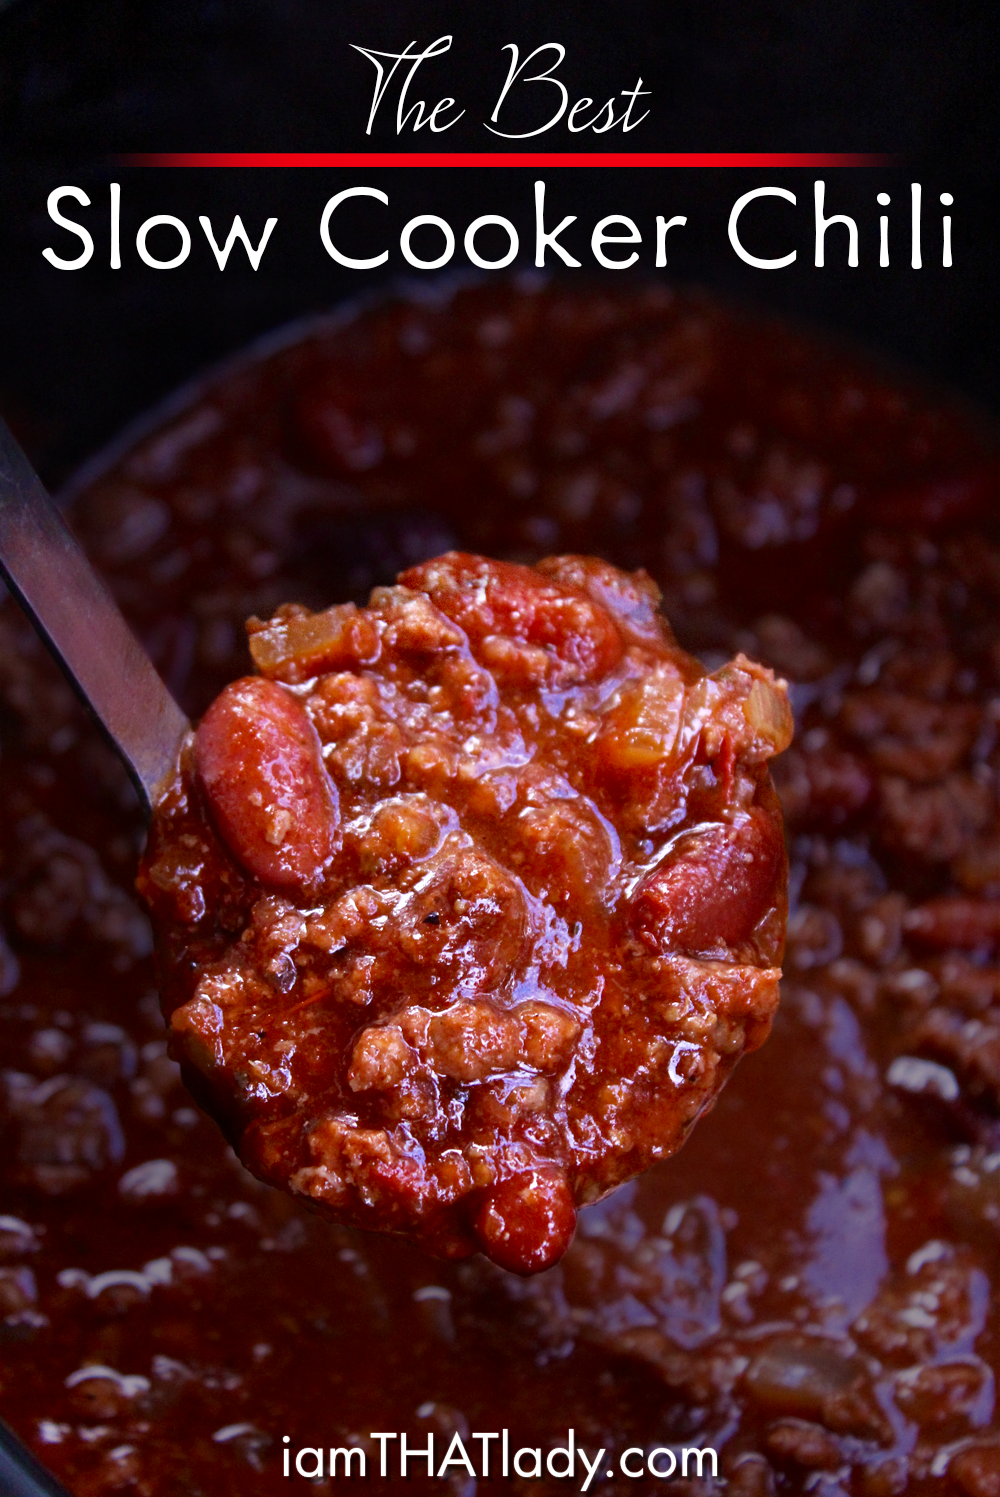 This Crockpot Chili is so easy and SOO good! This is great for a freezer meal too!